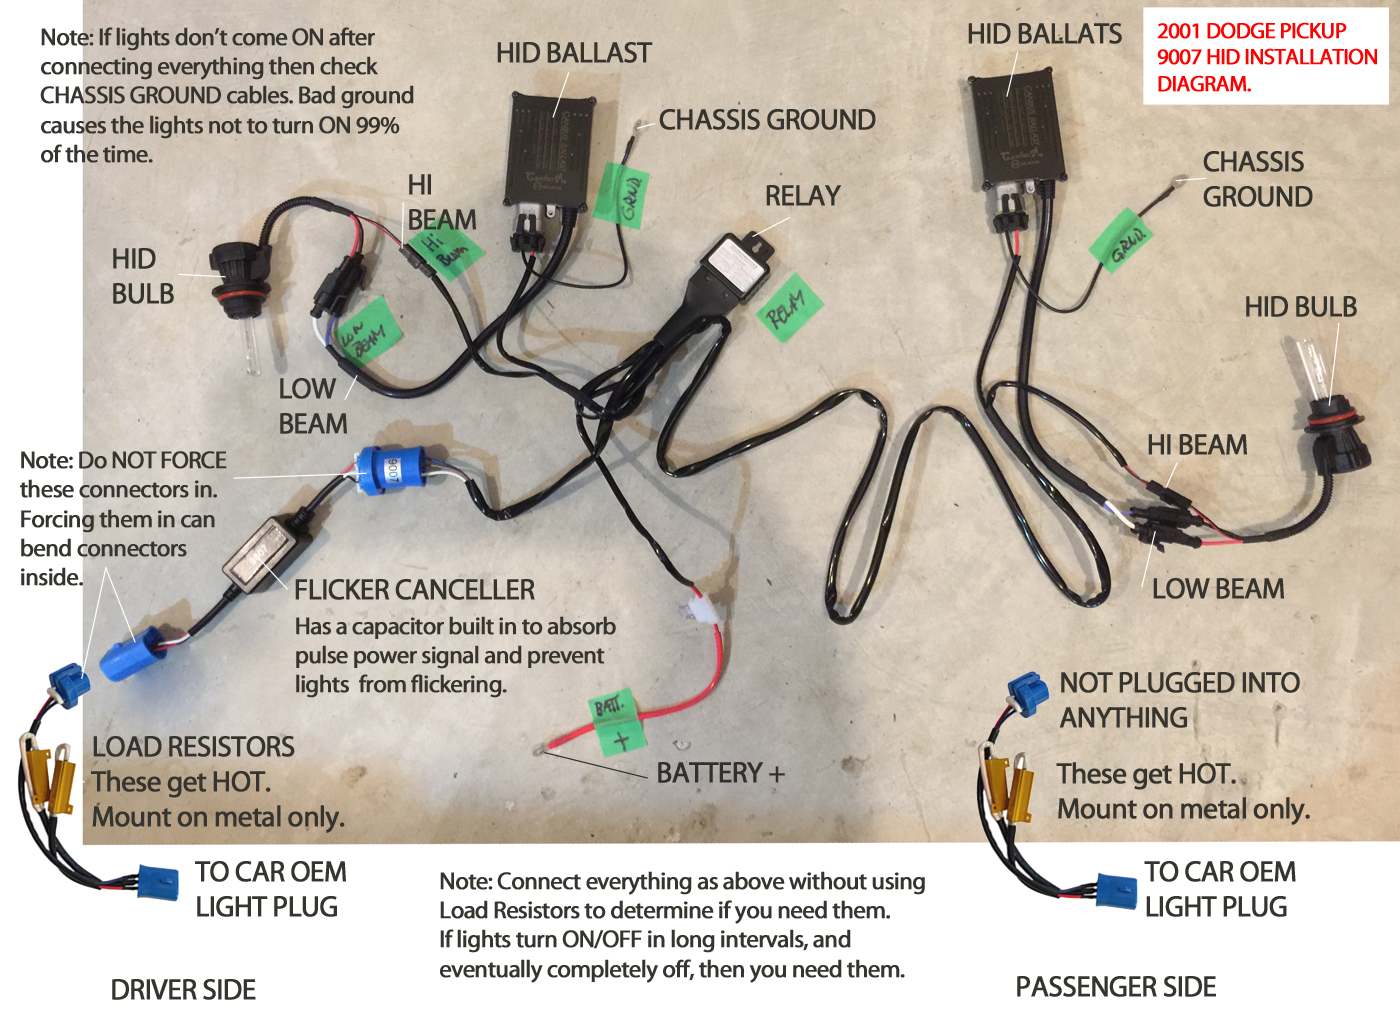 Wiring Diagram For Hid Lights : Hid vision canada installation diagrams